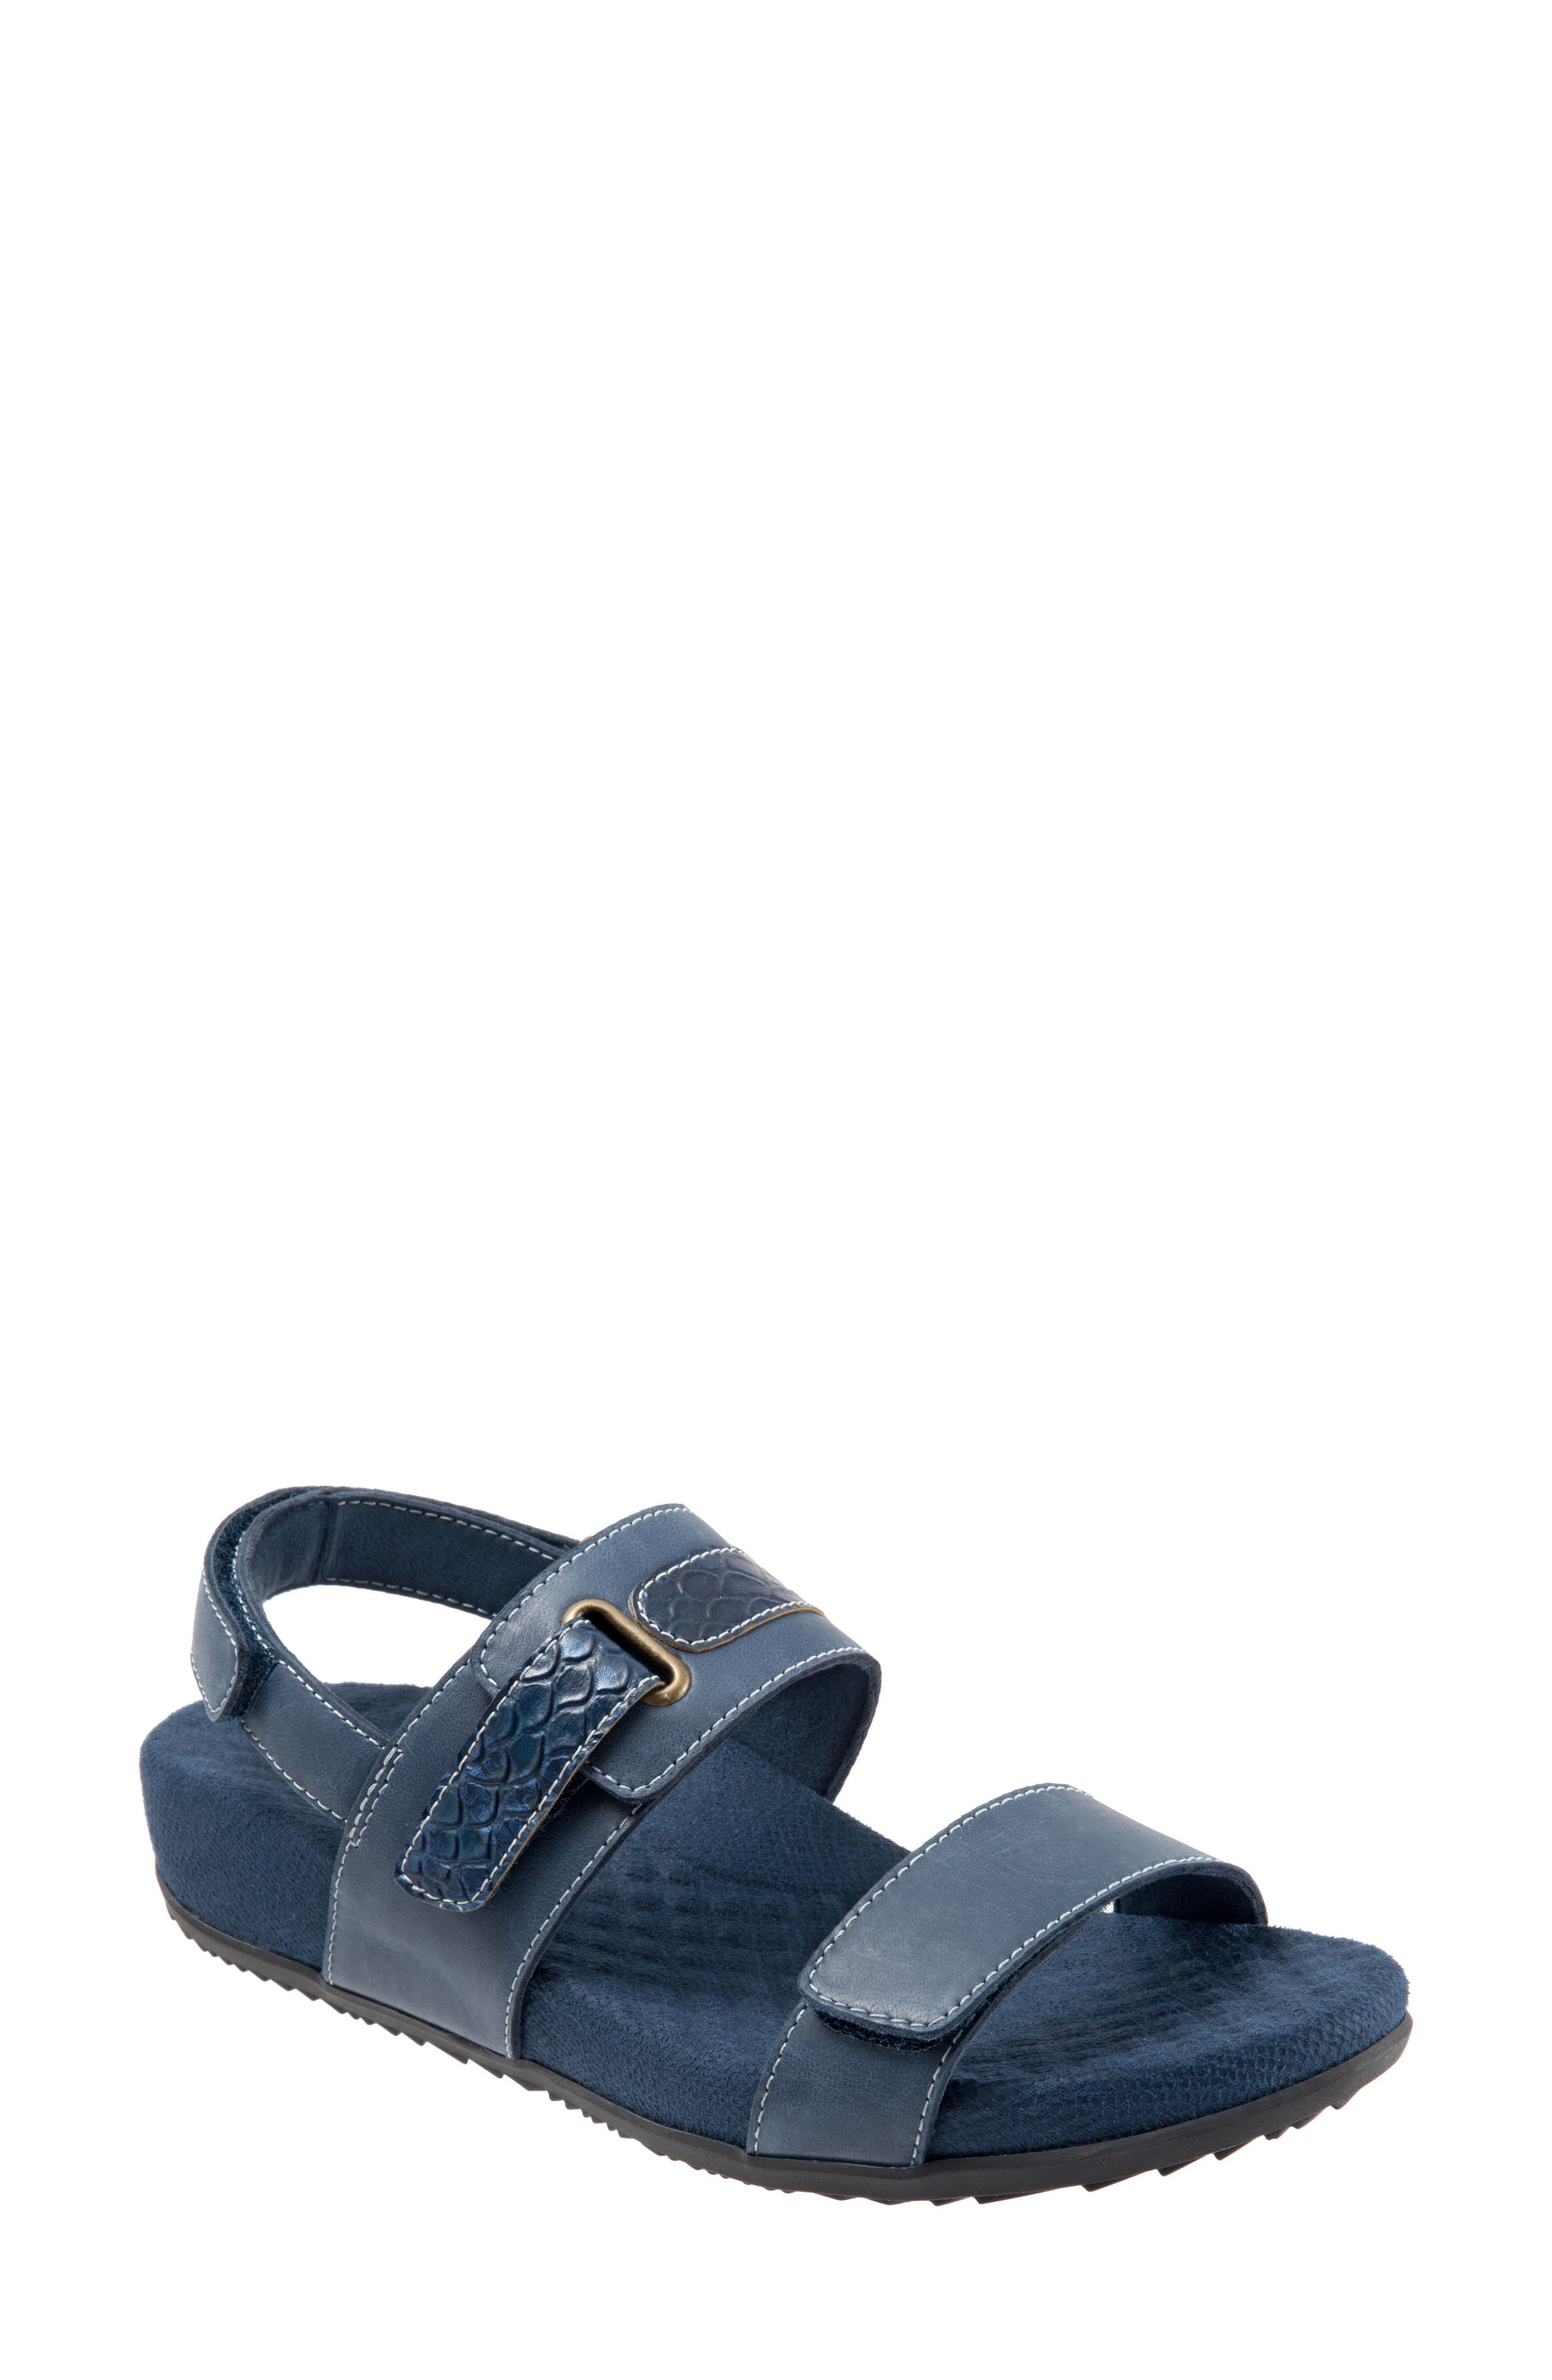 SOFTWALK<SUP>®</SUP>, Bimmer Sandal, Main thumbnail 1, color, NAVY LEATHER